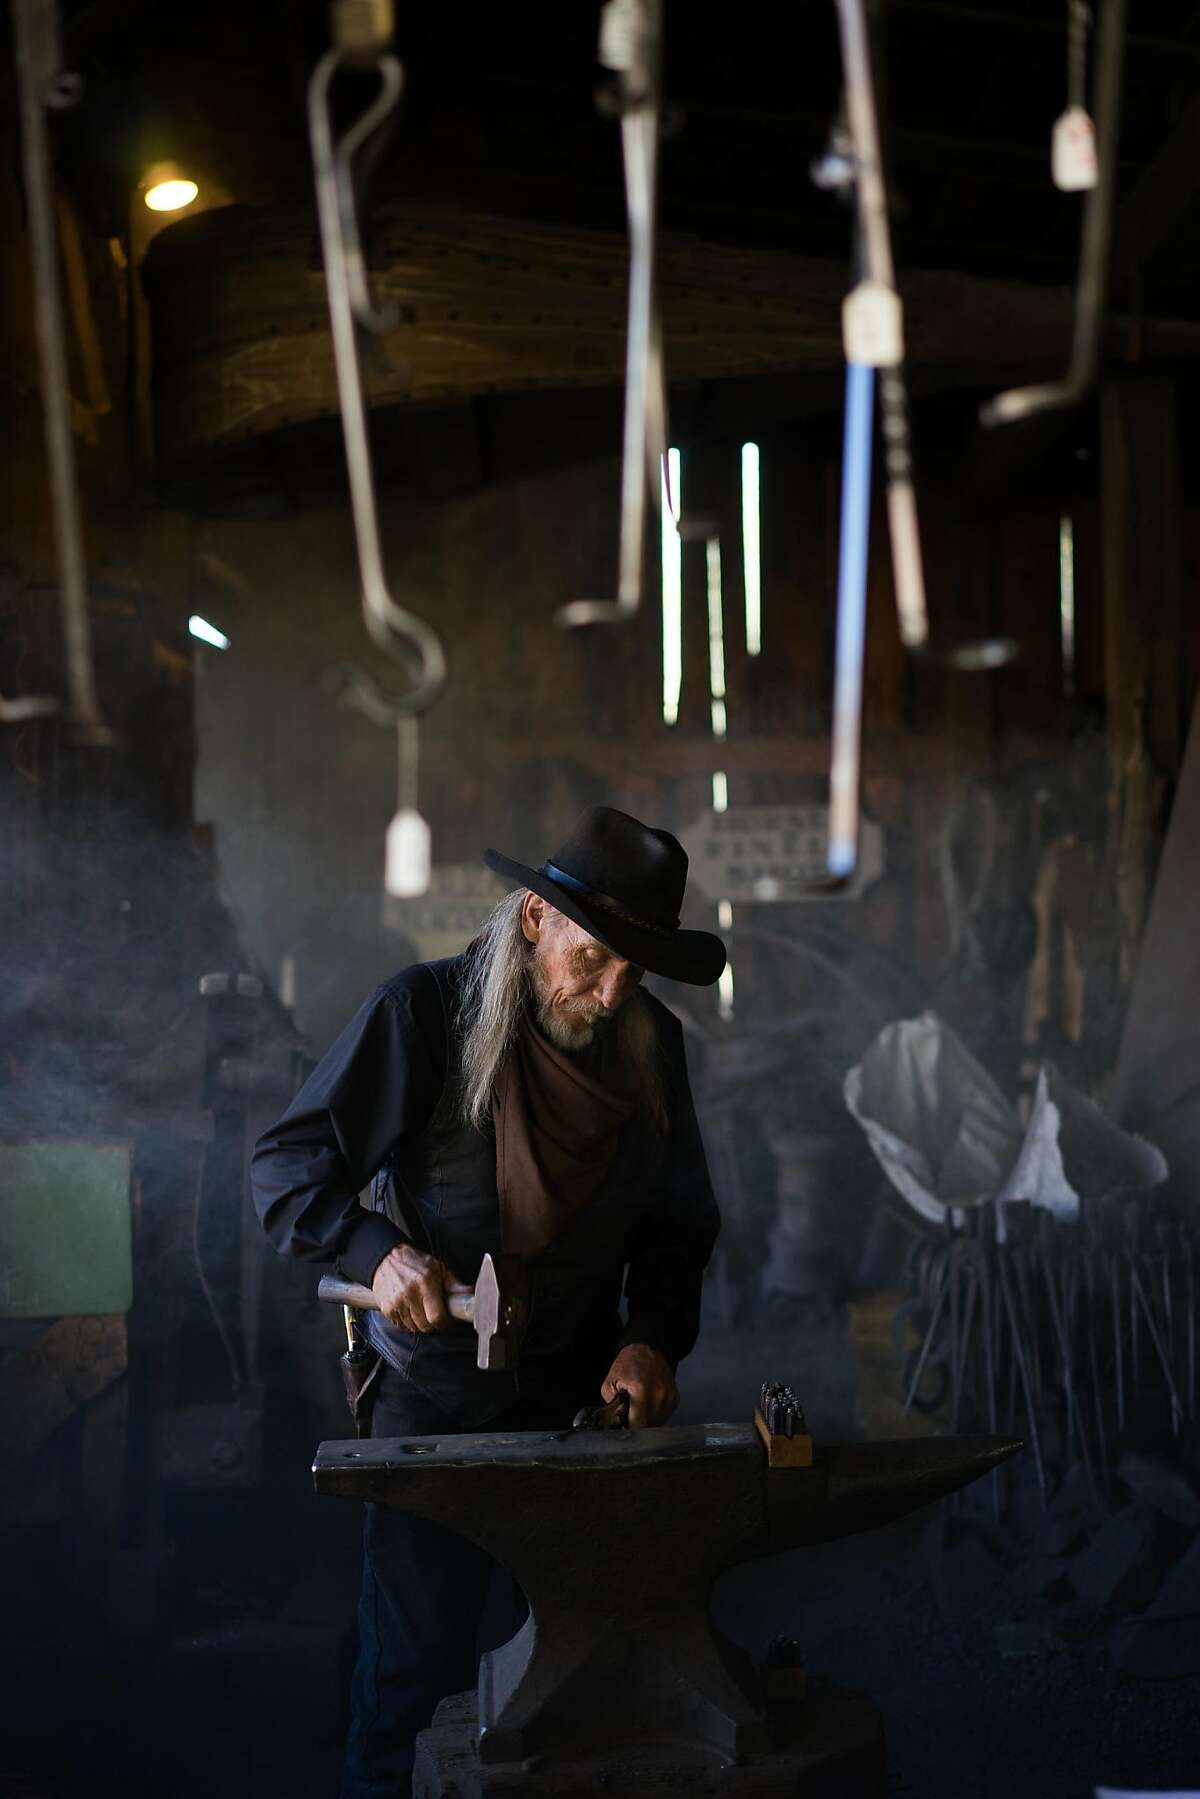 Mike Maciejewski hammers a small sword at the blacksmith shop at Columbia State Park in Columbia, Calif. on Friday, Oct. 9, 2015. Columbia has the largest number of gold rush-era buildings.